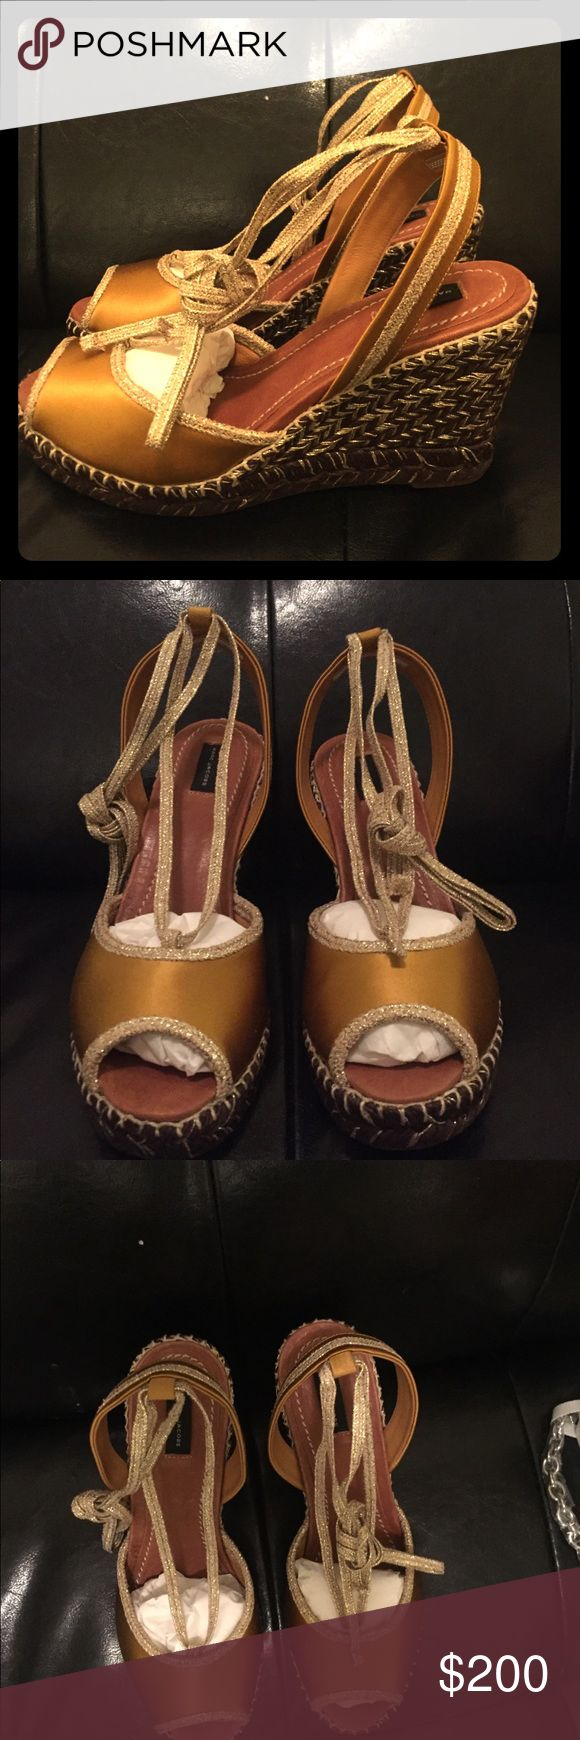 Marc Jacob mustard yellow wedge espadrille. NWT Marc Jacob mustard yellow wedge espadrille. NWT/ never worn. Size 8. Comes with original box. Retails for 295. Marc Jacobs Shoes Espadrilles